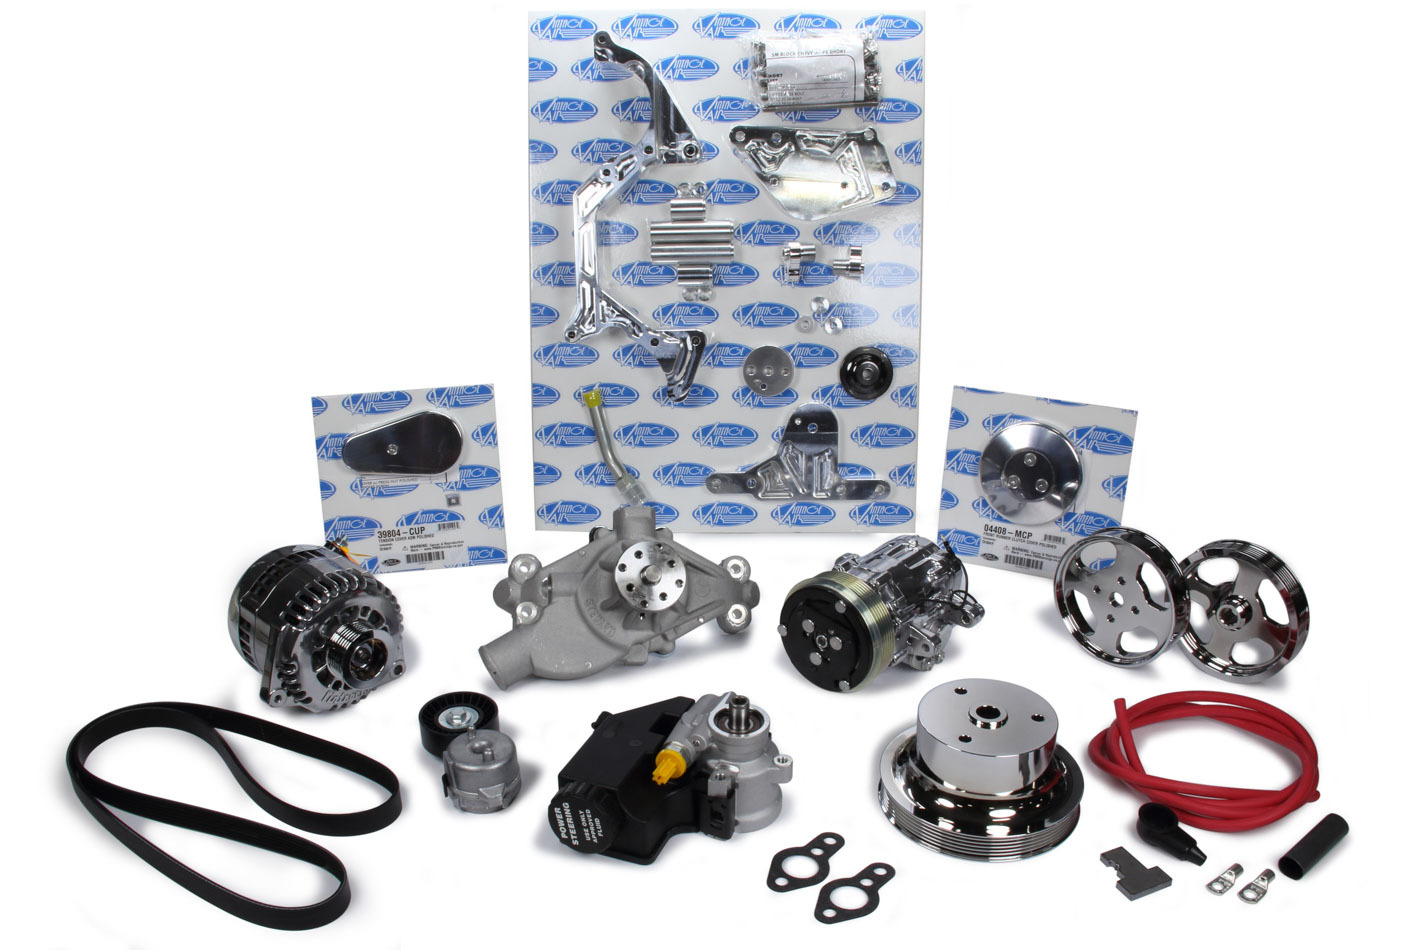 Vintage Air 174015 Pulley Kit, Front Runner, 6 Rib Serpentine, Aluminum, Polished, Small Block Chevy, Kit